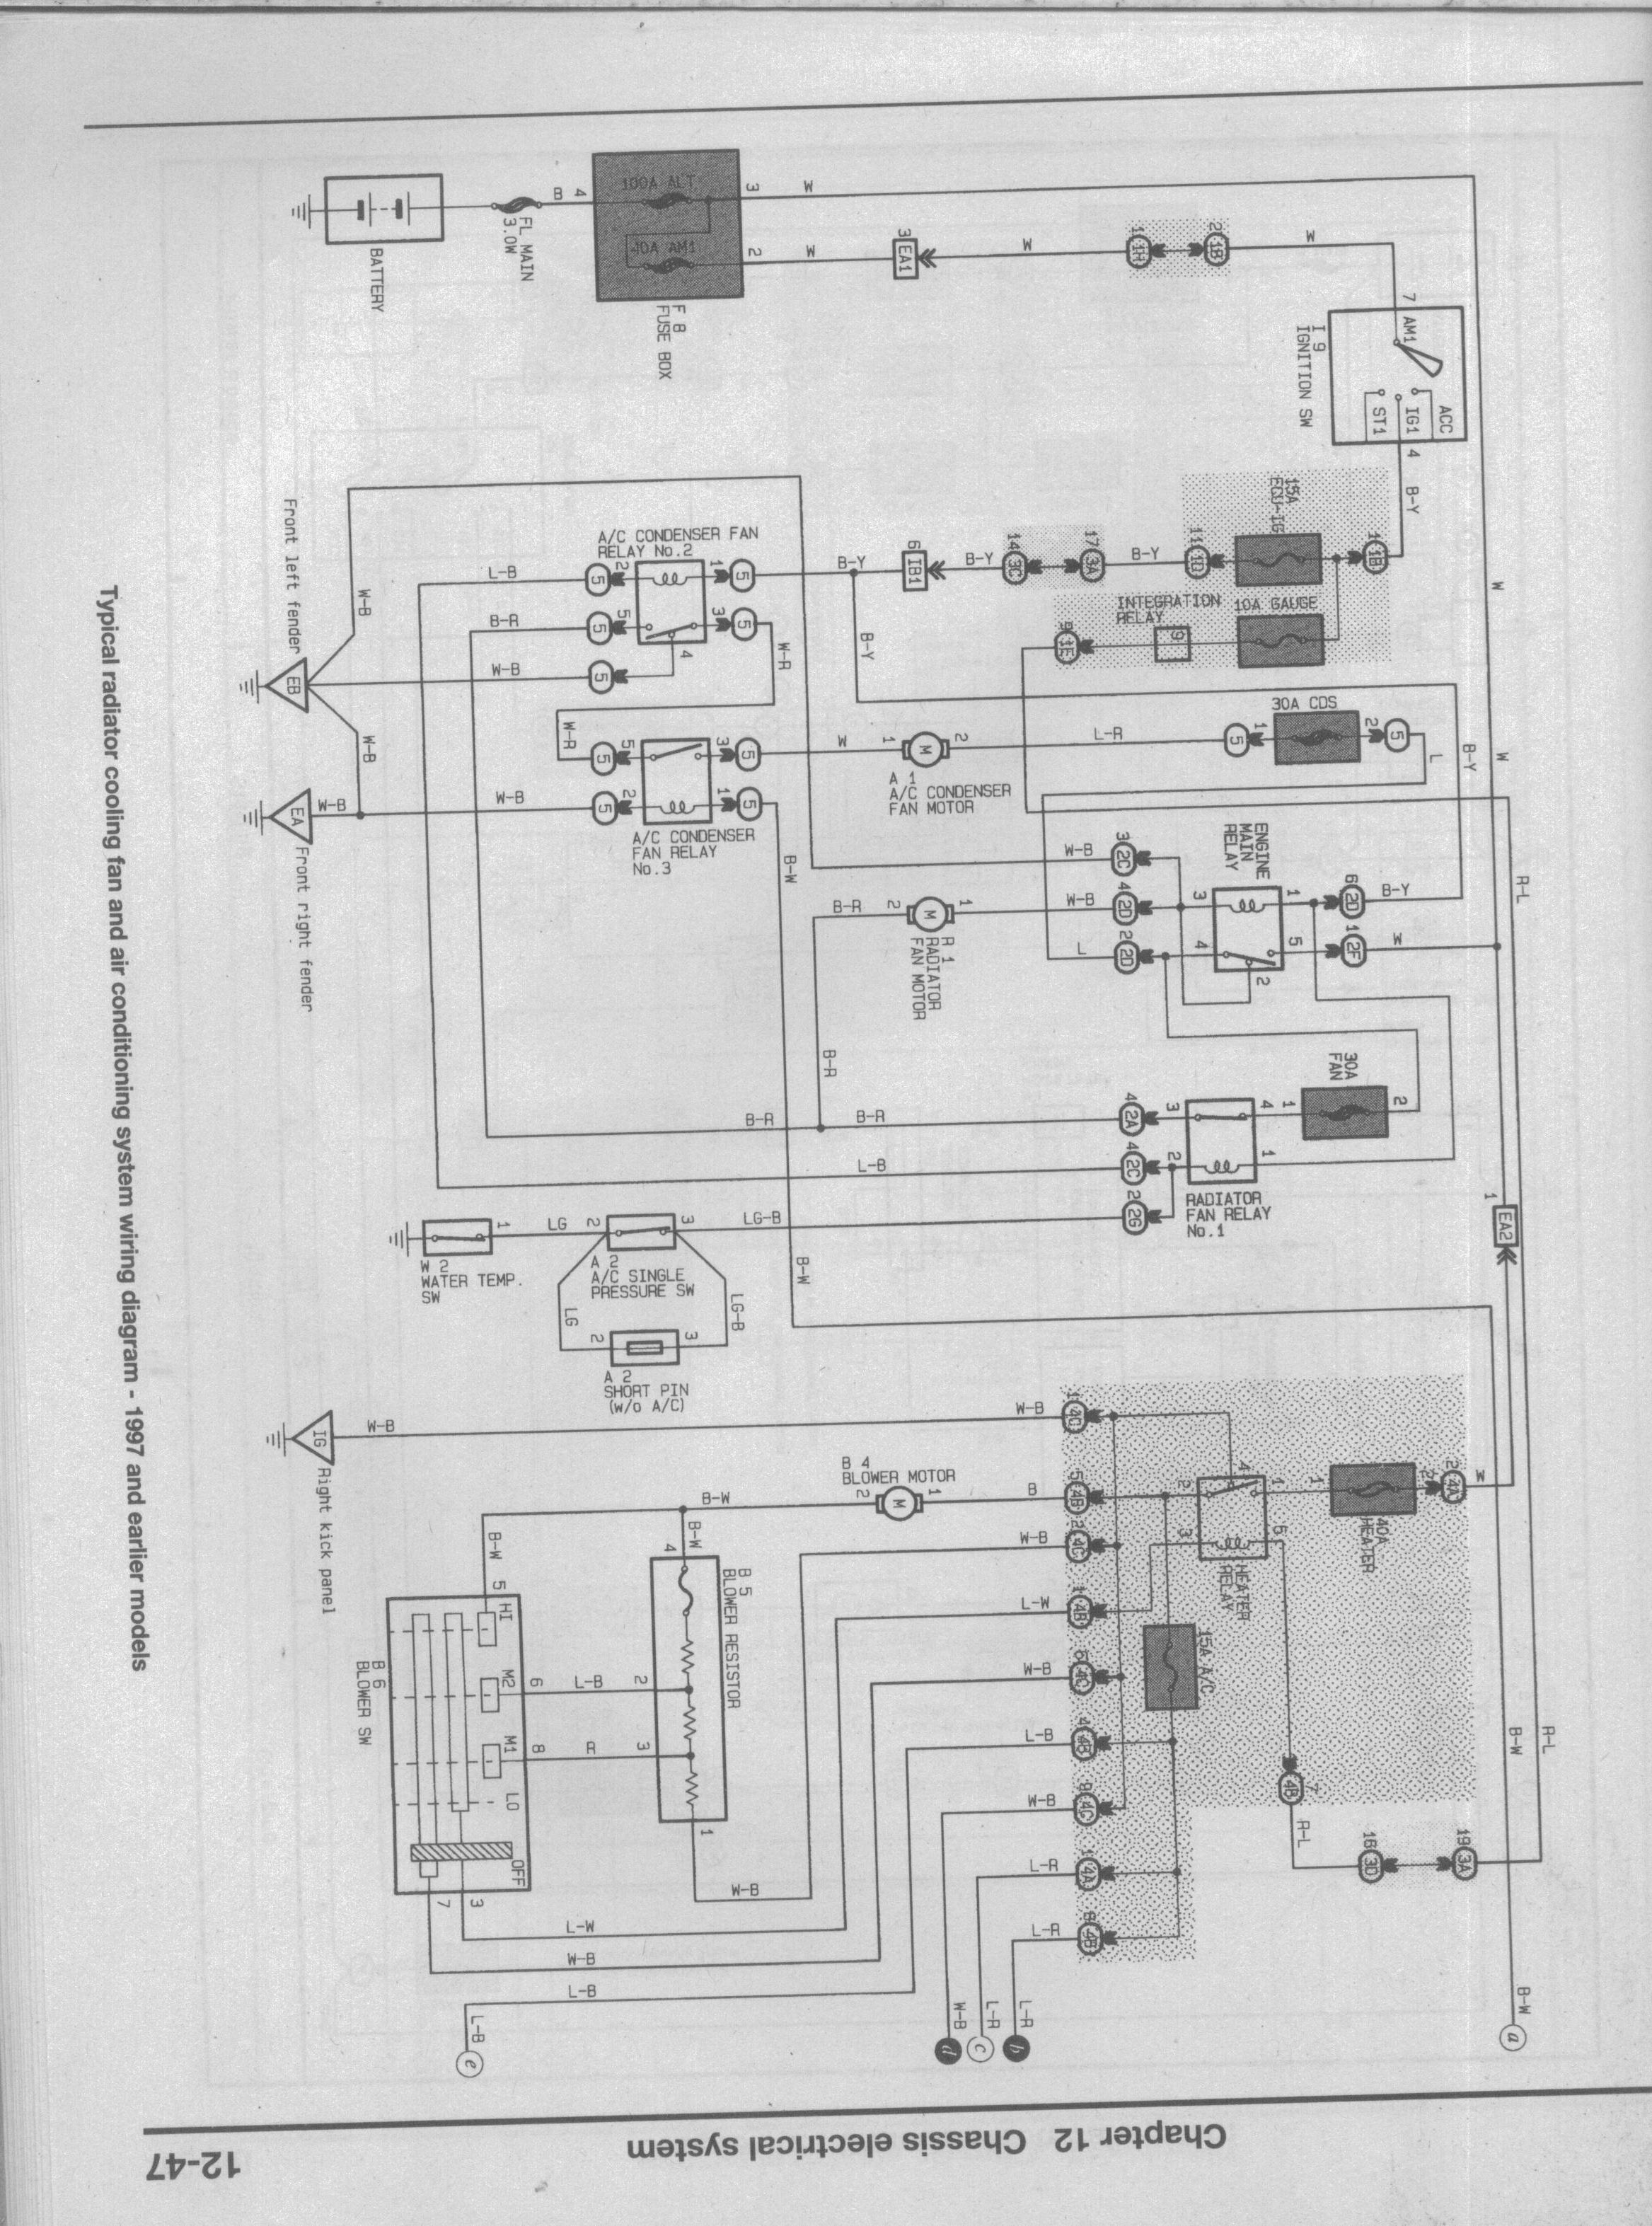 basic t stat wiring diagram